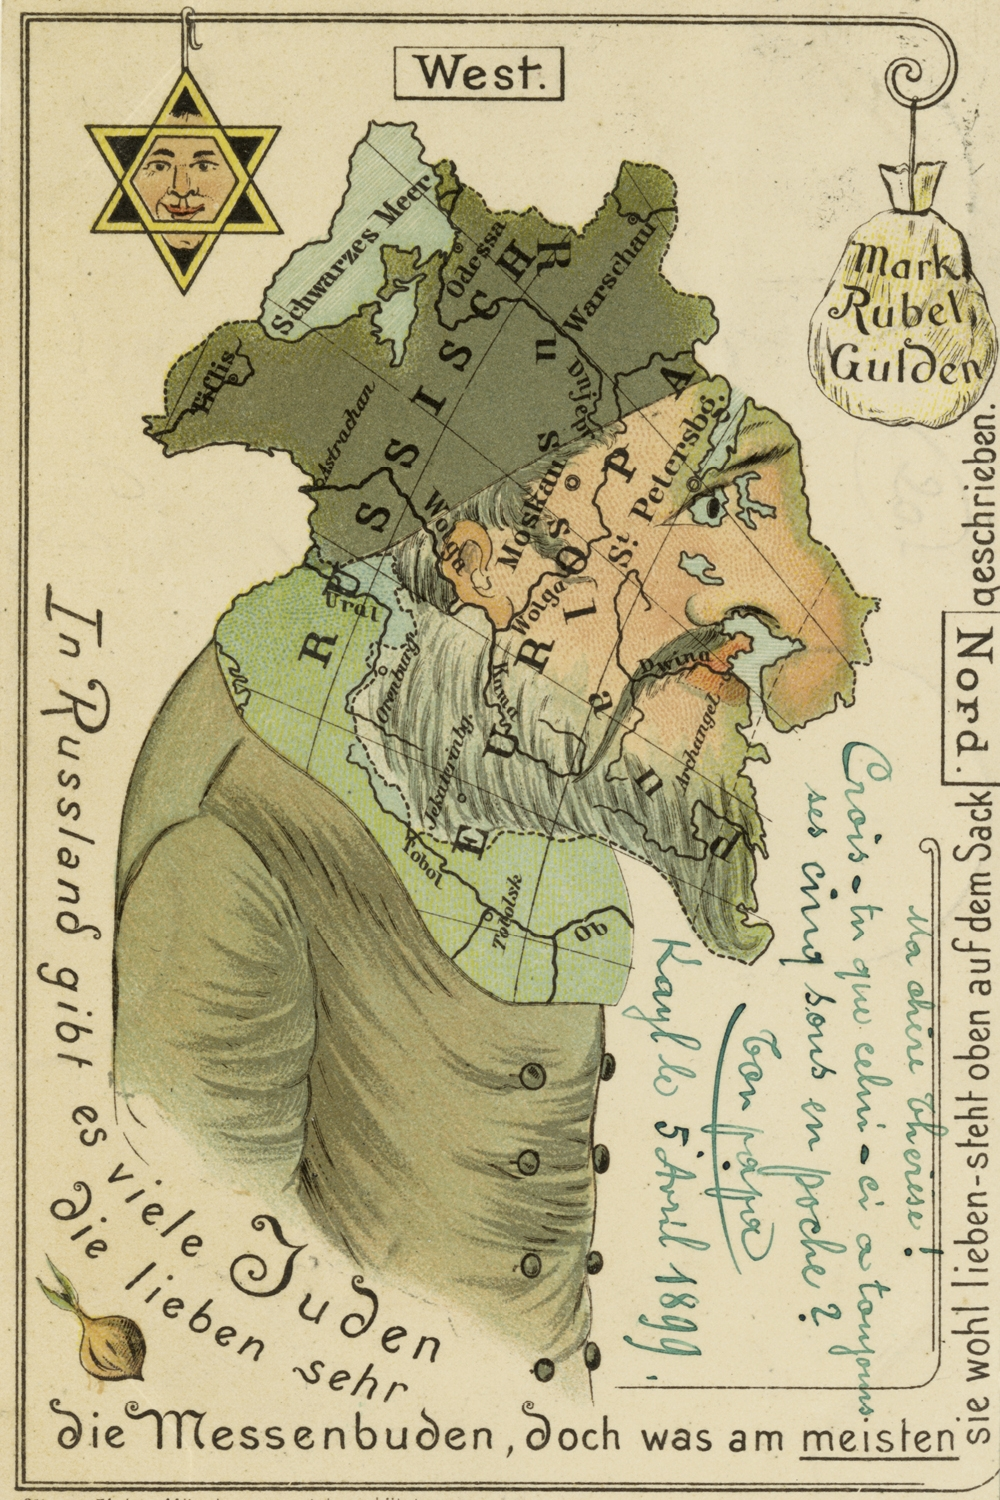 Anti-semitic illustration of a Jewish face as a map of Europe. ca. 1890s - 1910s